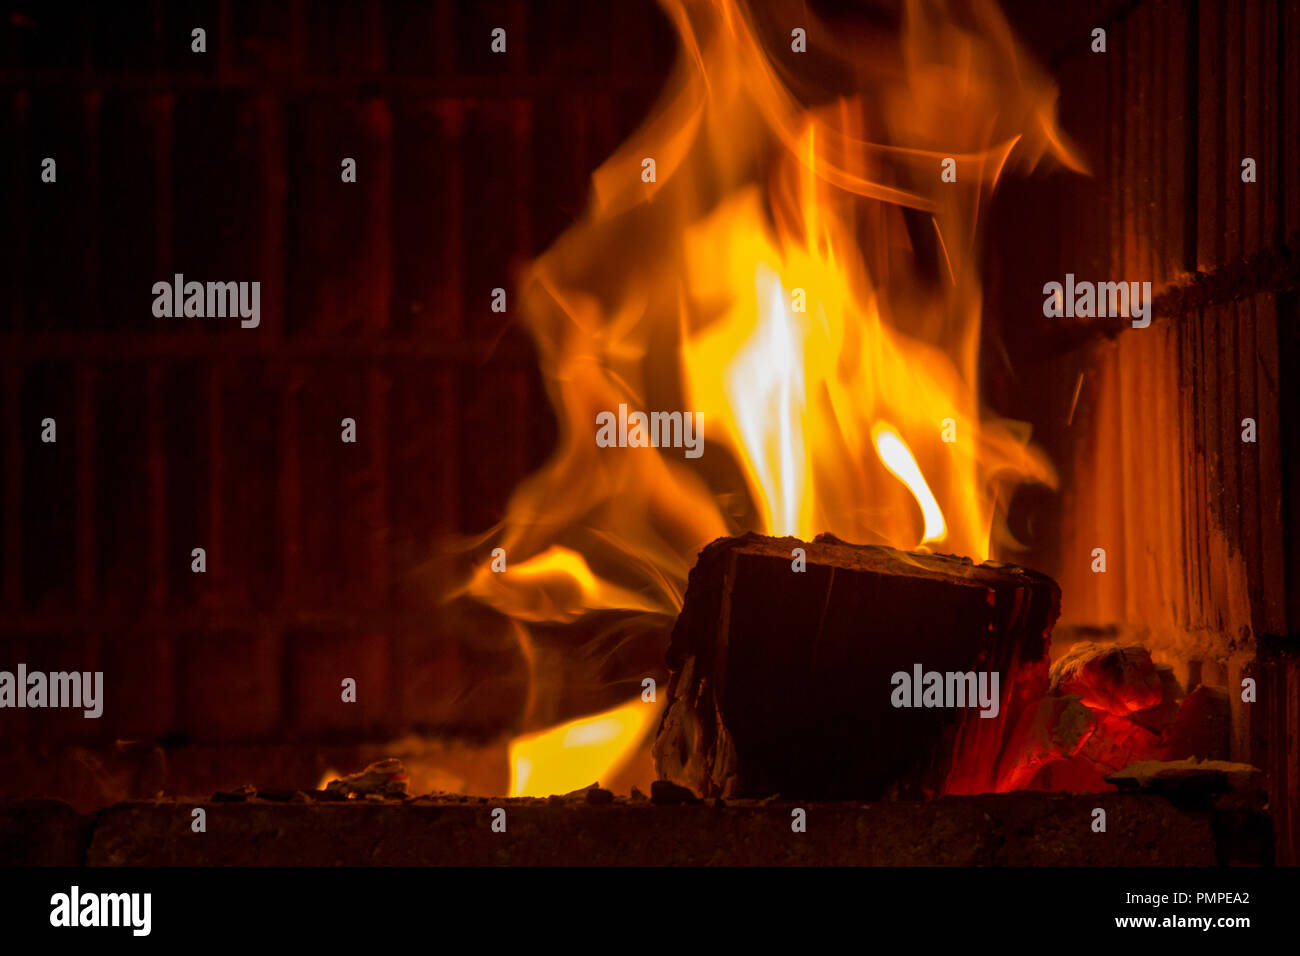 Firewood in blazing flames of the fireplace - Stock Image